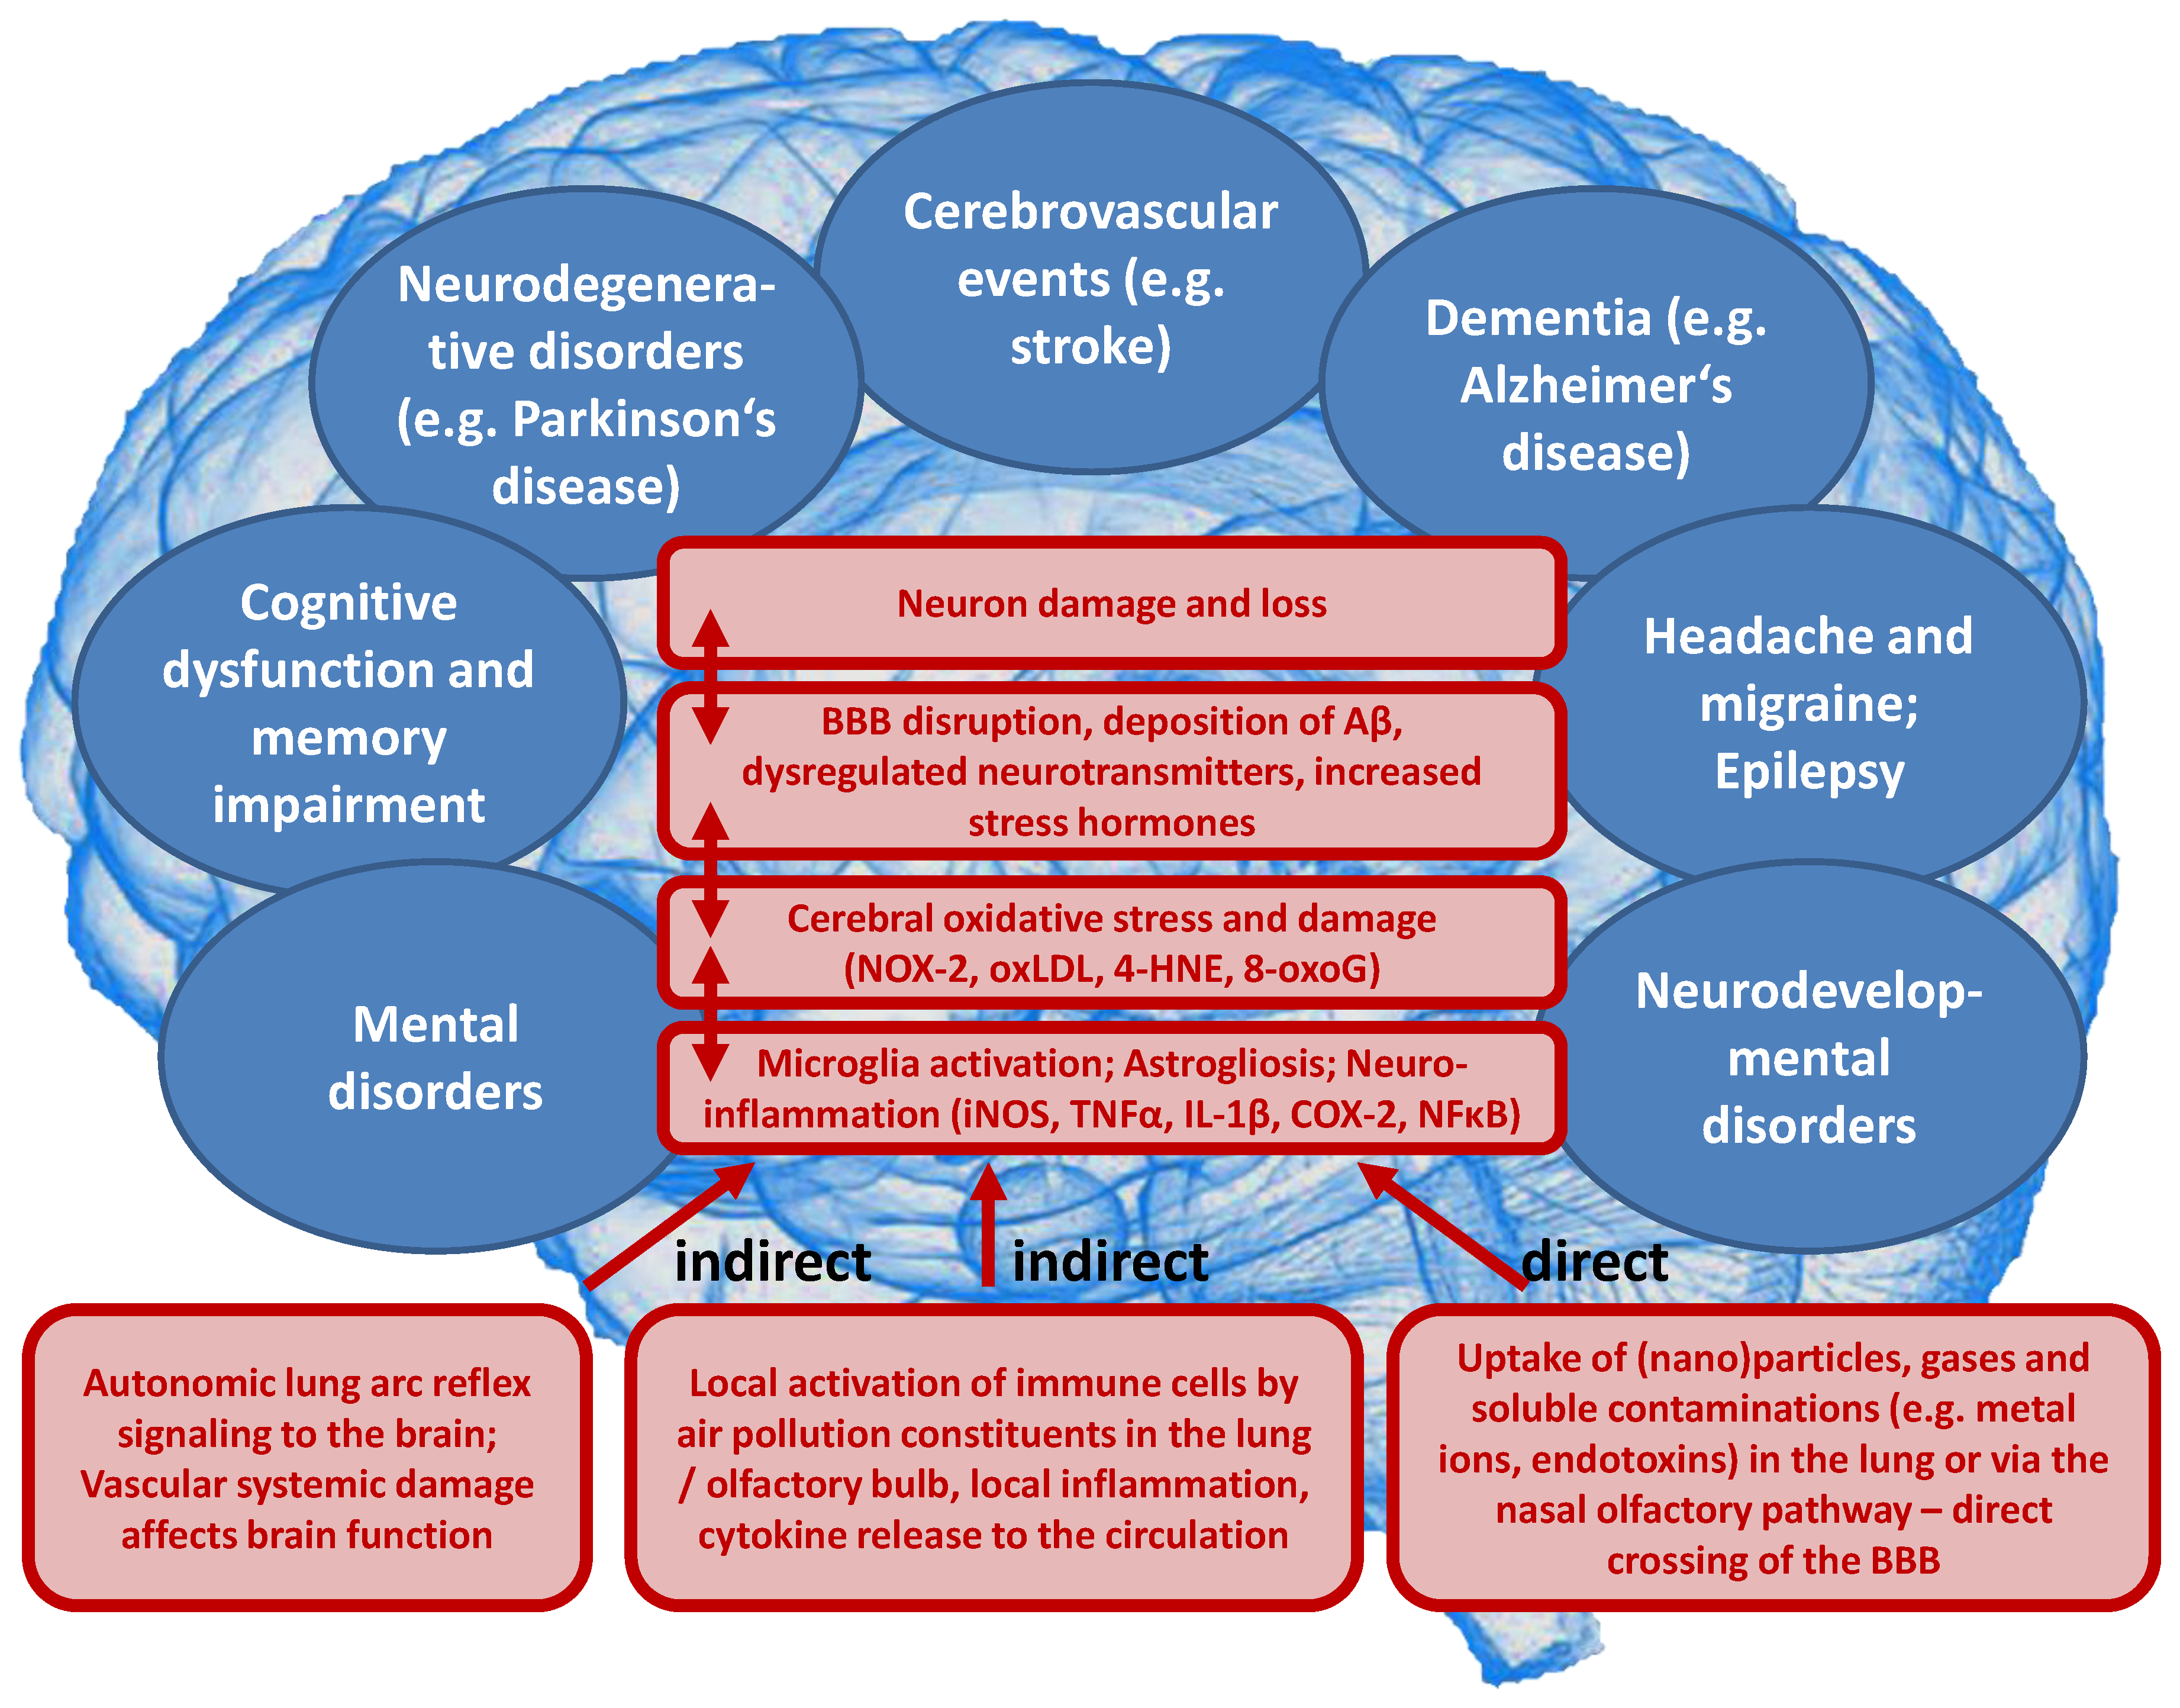 Ijms Free Full Text Ambient Air Pollution Increases The Risk Of Cerebrovascular And Neuropsychiatric Disorders Through Induction Of Inflammation And Oxidative Stress Html